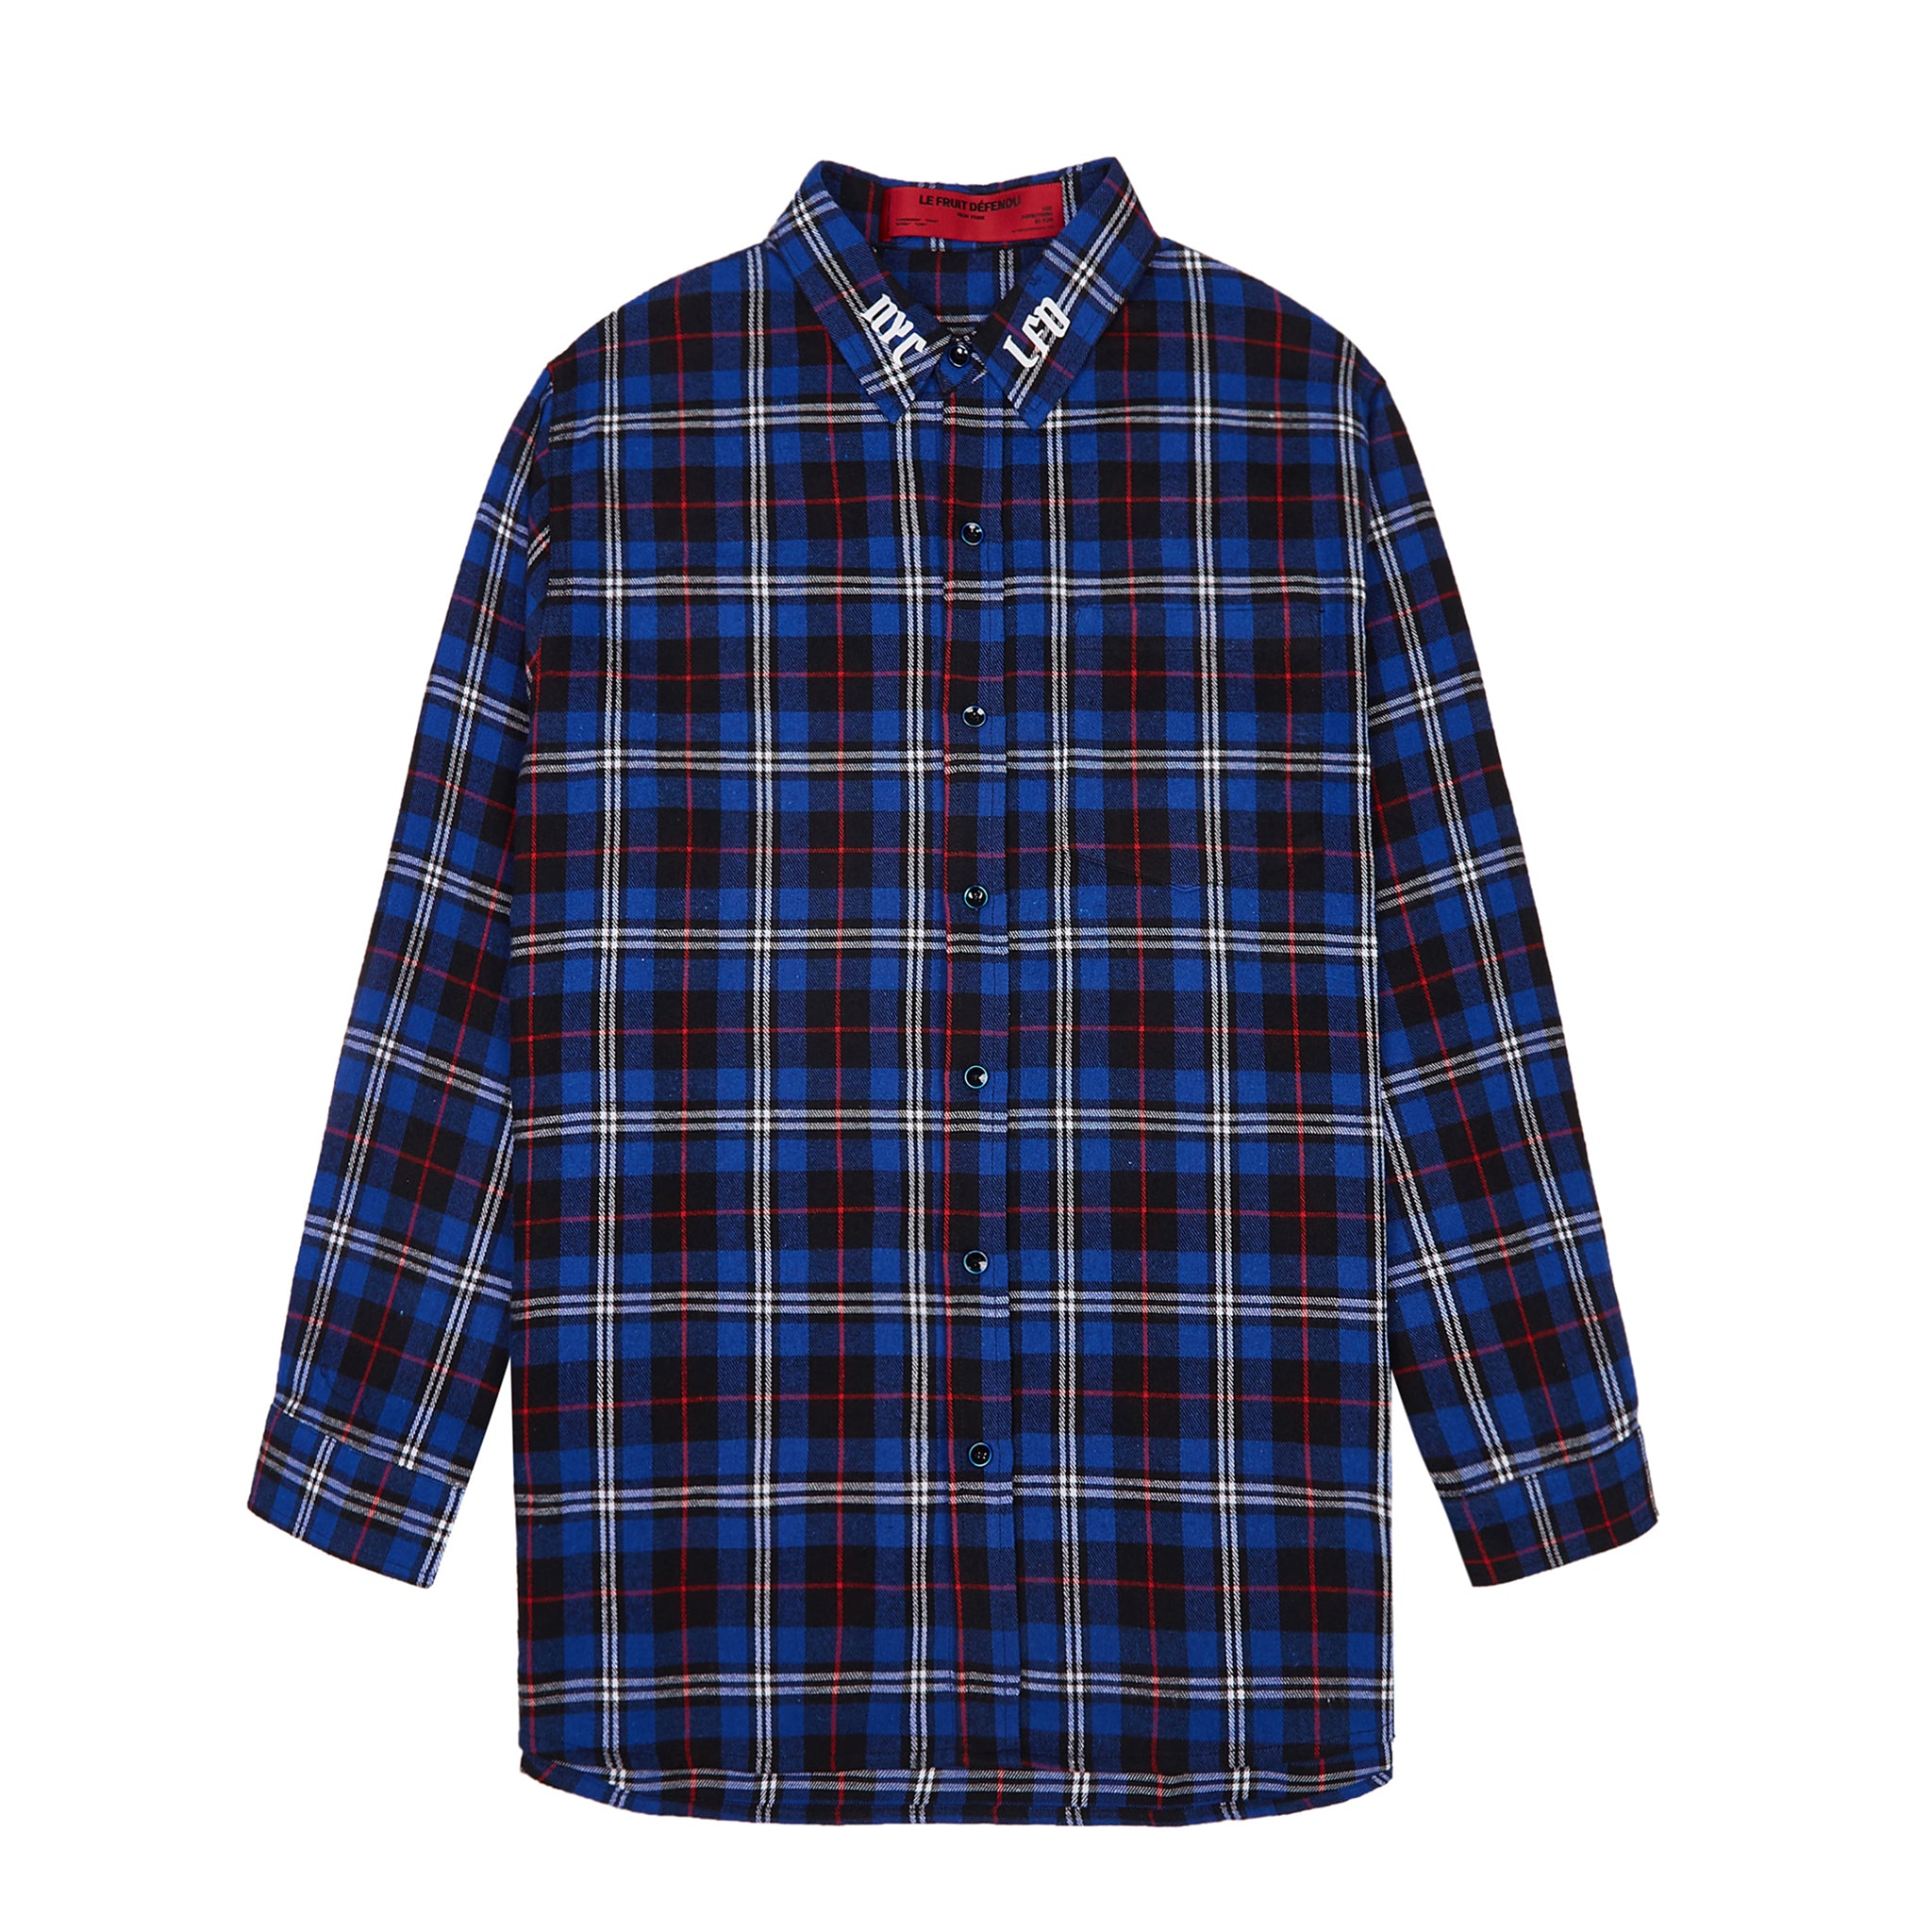 Load image into Gallery viewer, La Vie en Rose Check Shirt - Blue